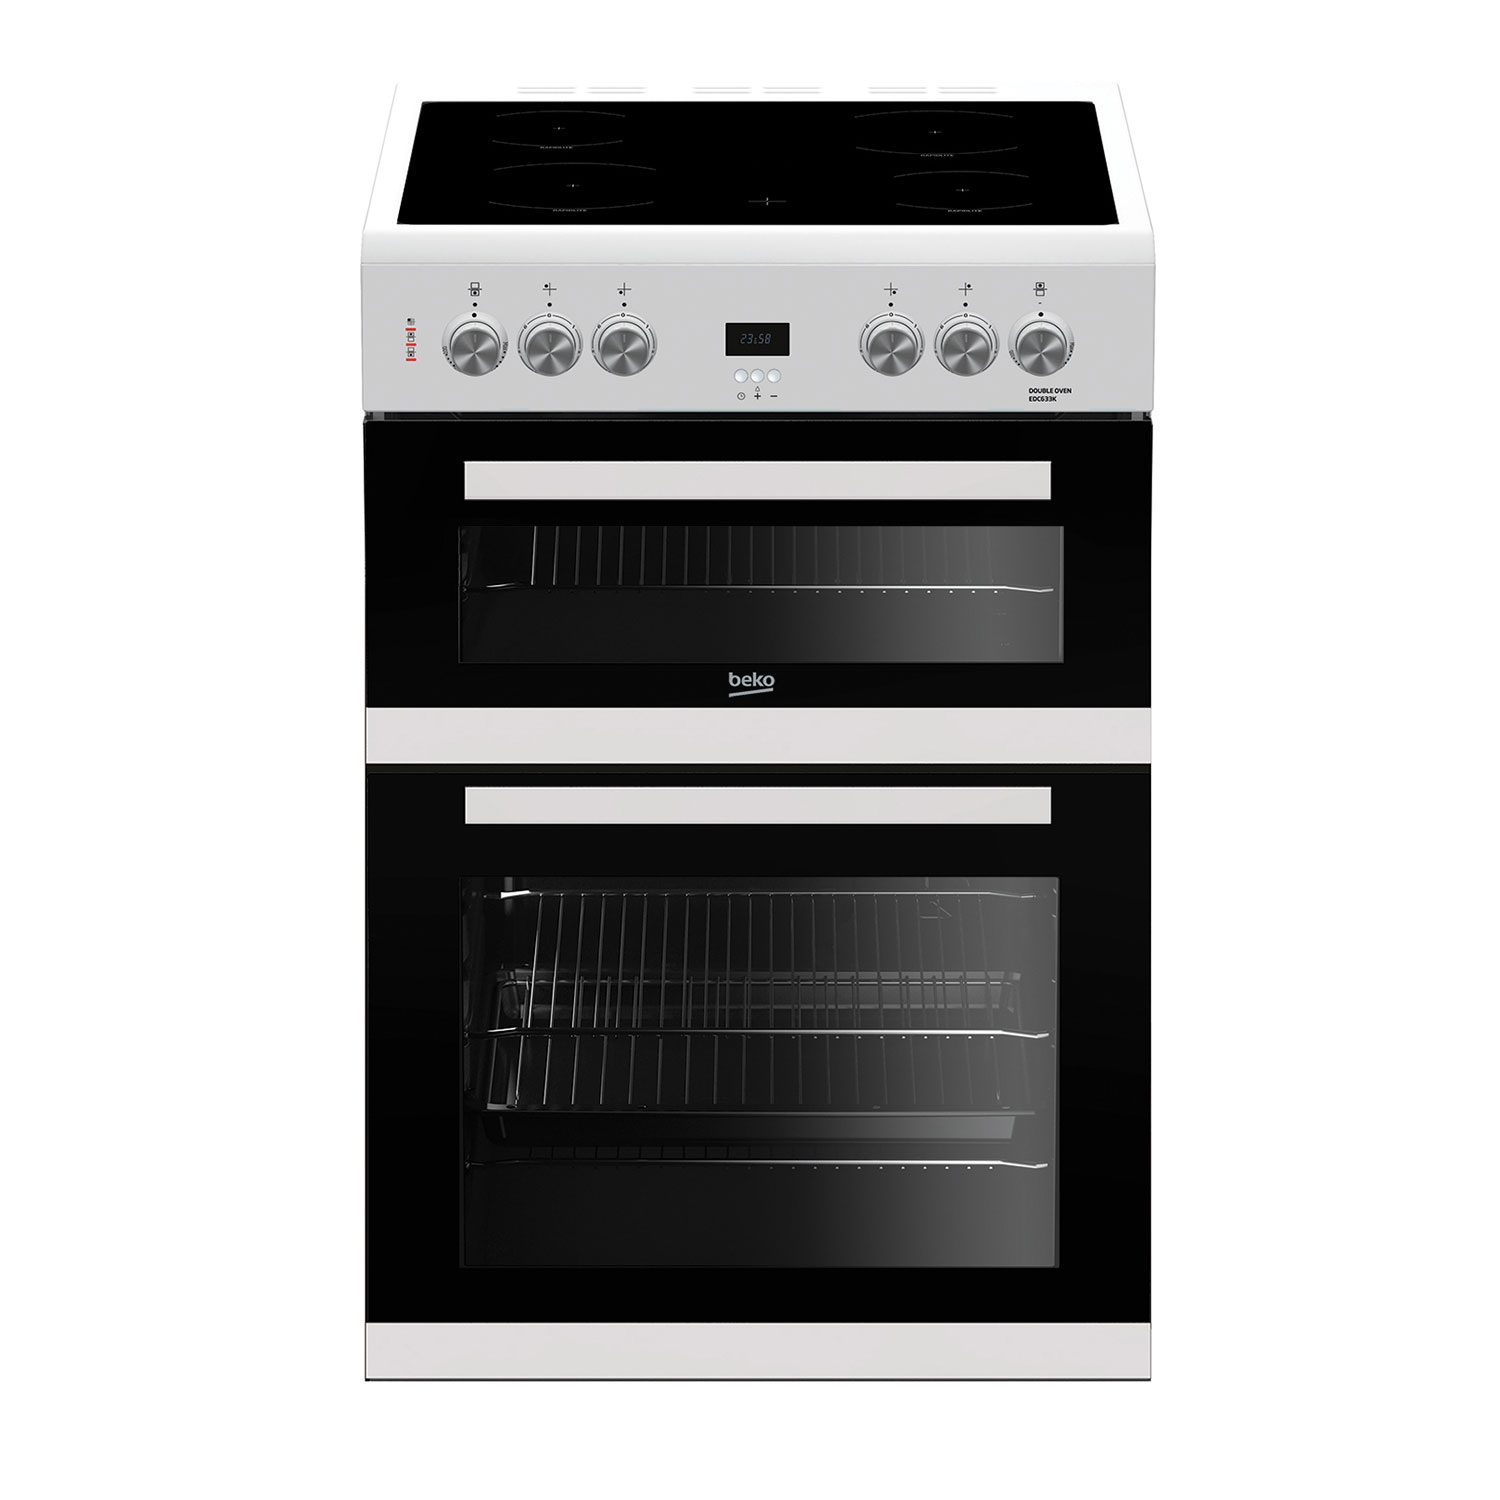 Beko 60cm Double Oven Electric Cooker with Ceramic Hob - White - A/A Rated - 0